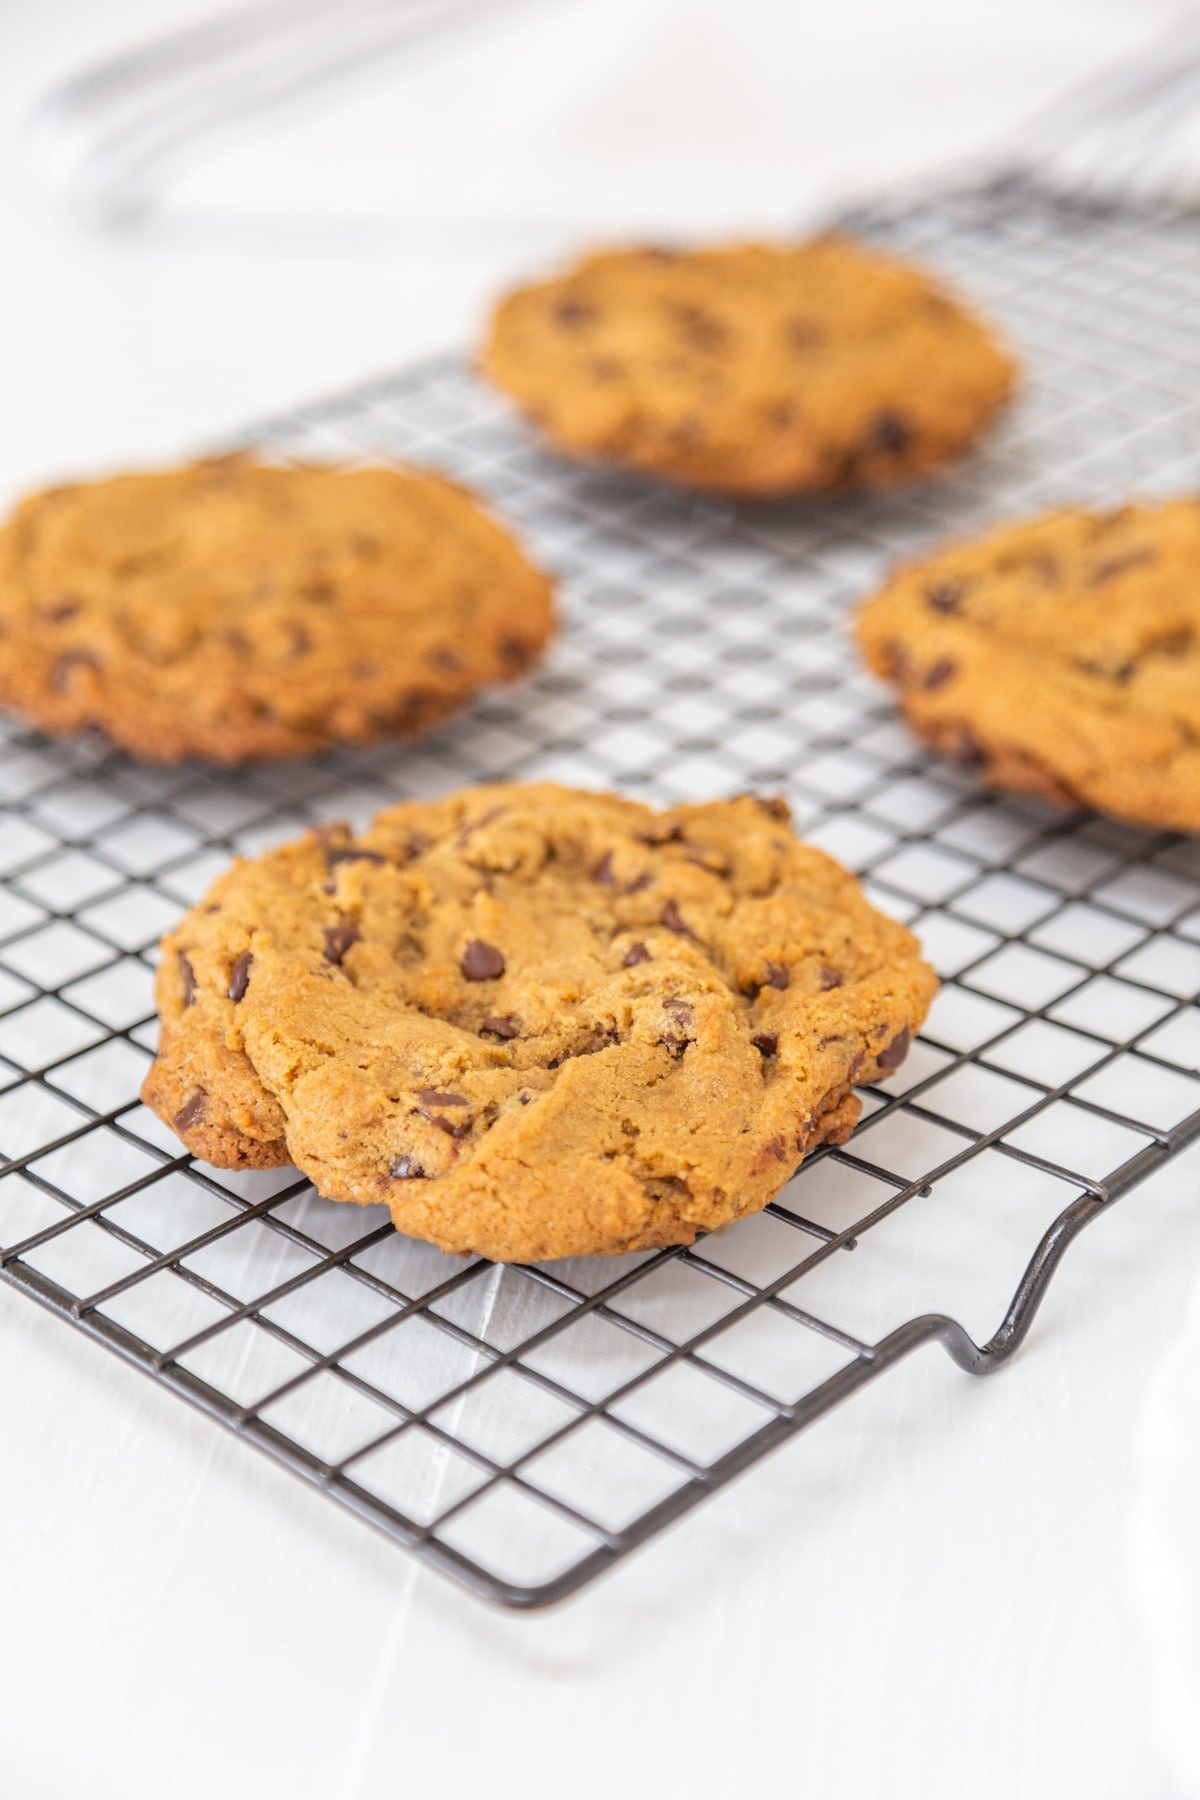 4 chocolate chip cookies on a wire cooling rack.